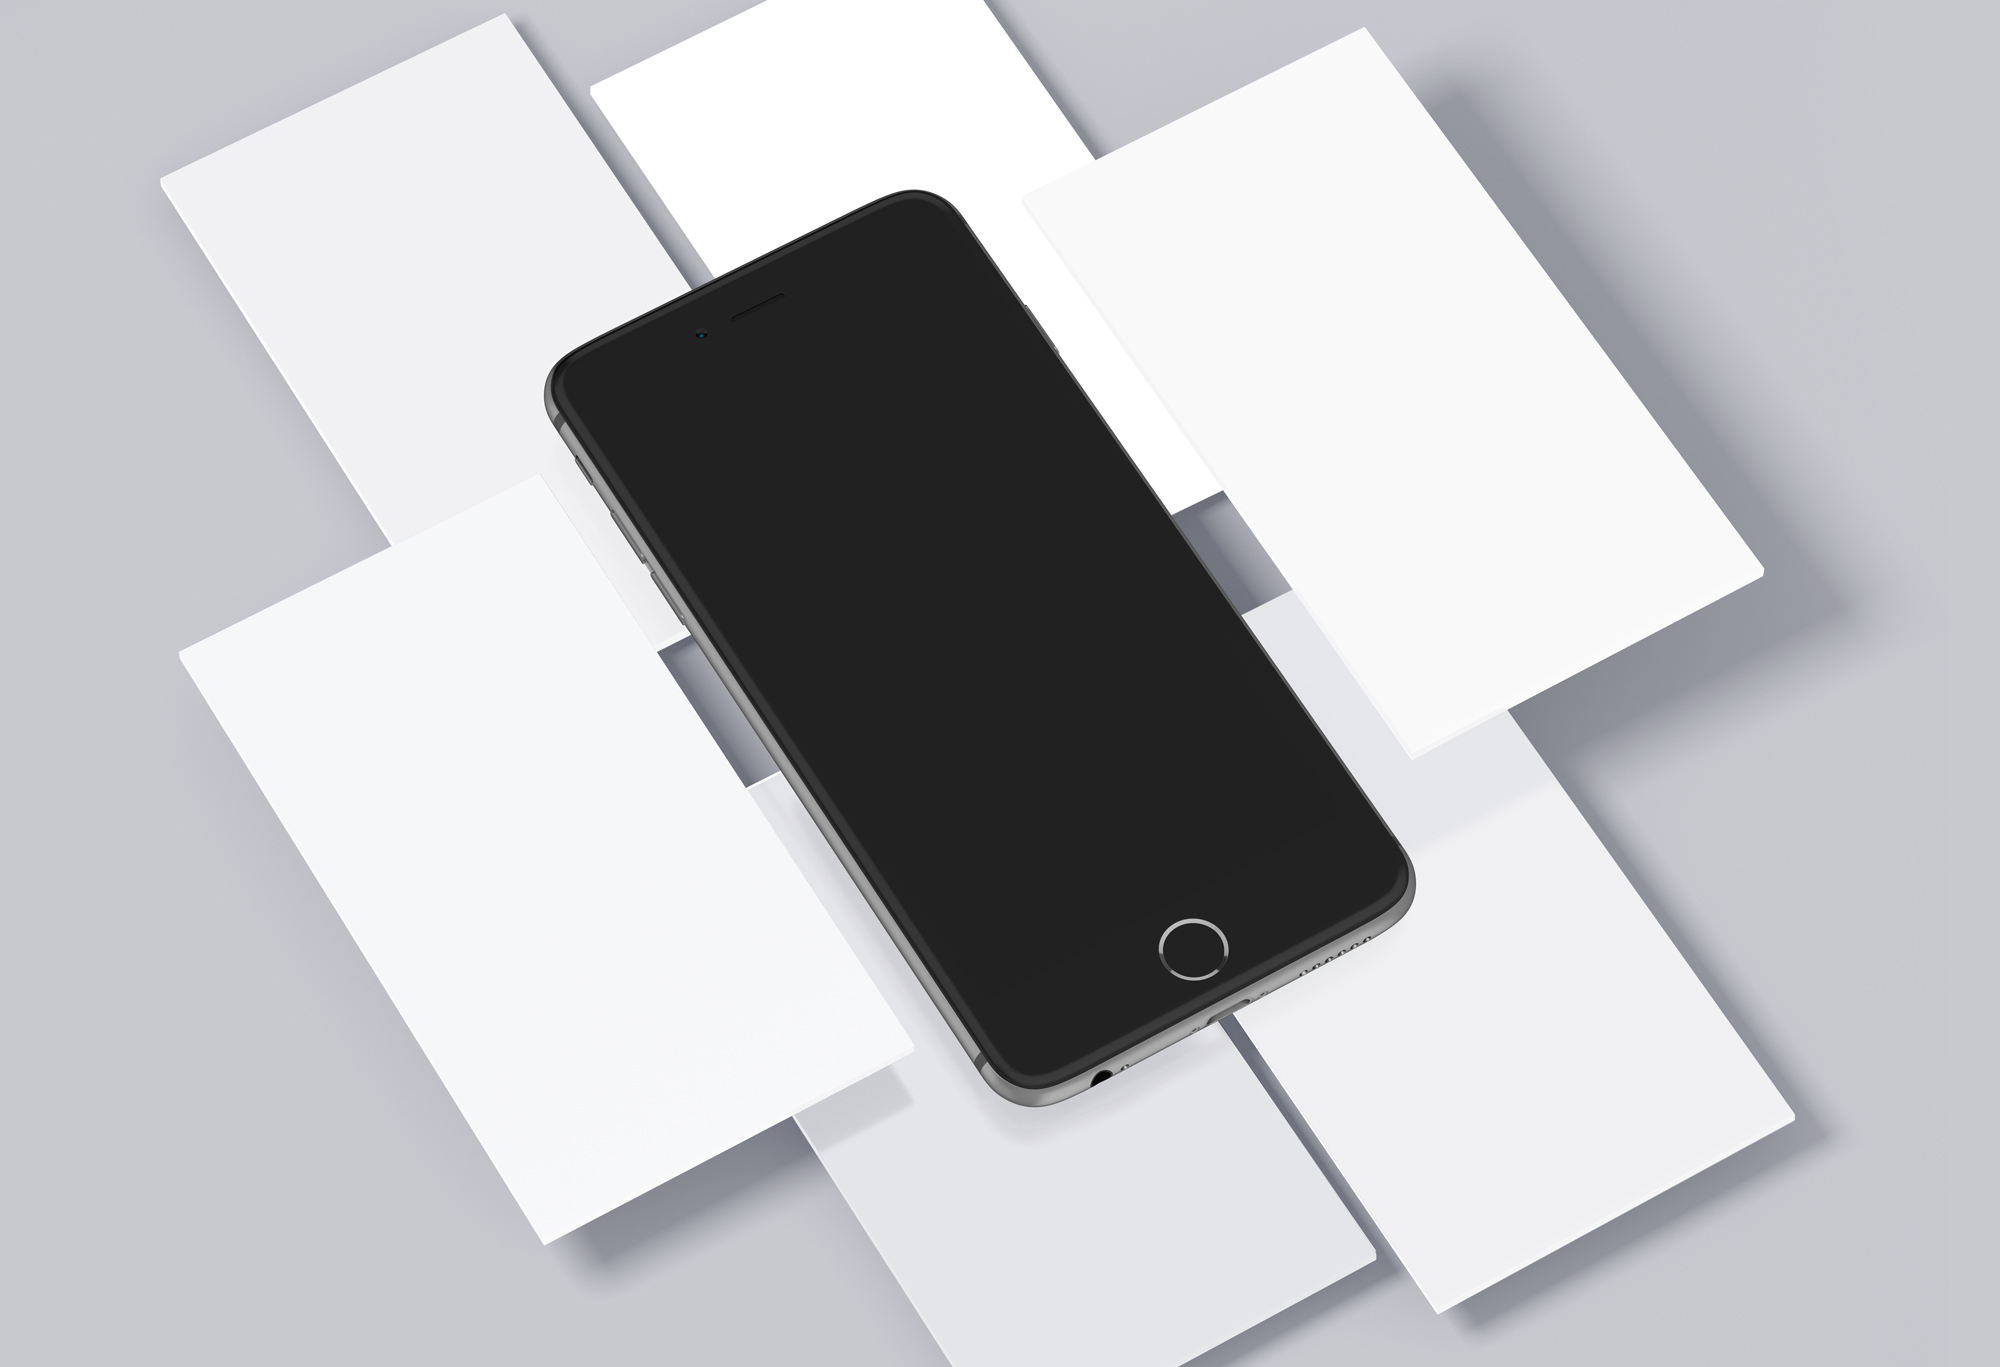 iPhone & 手机界面展示模板,Mobile Mockups